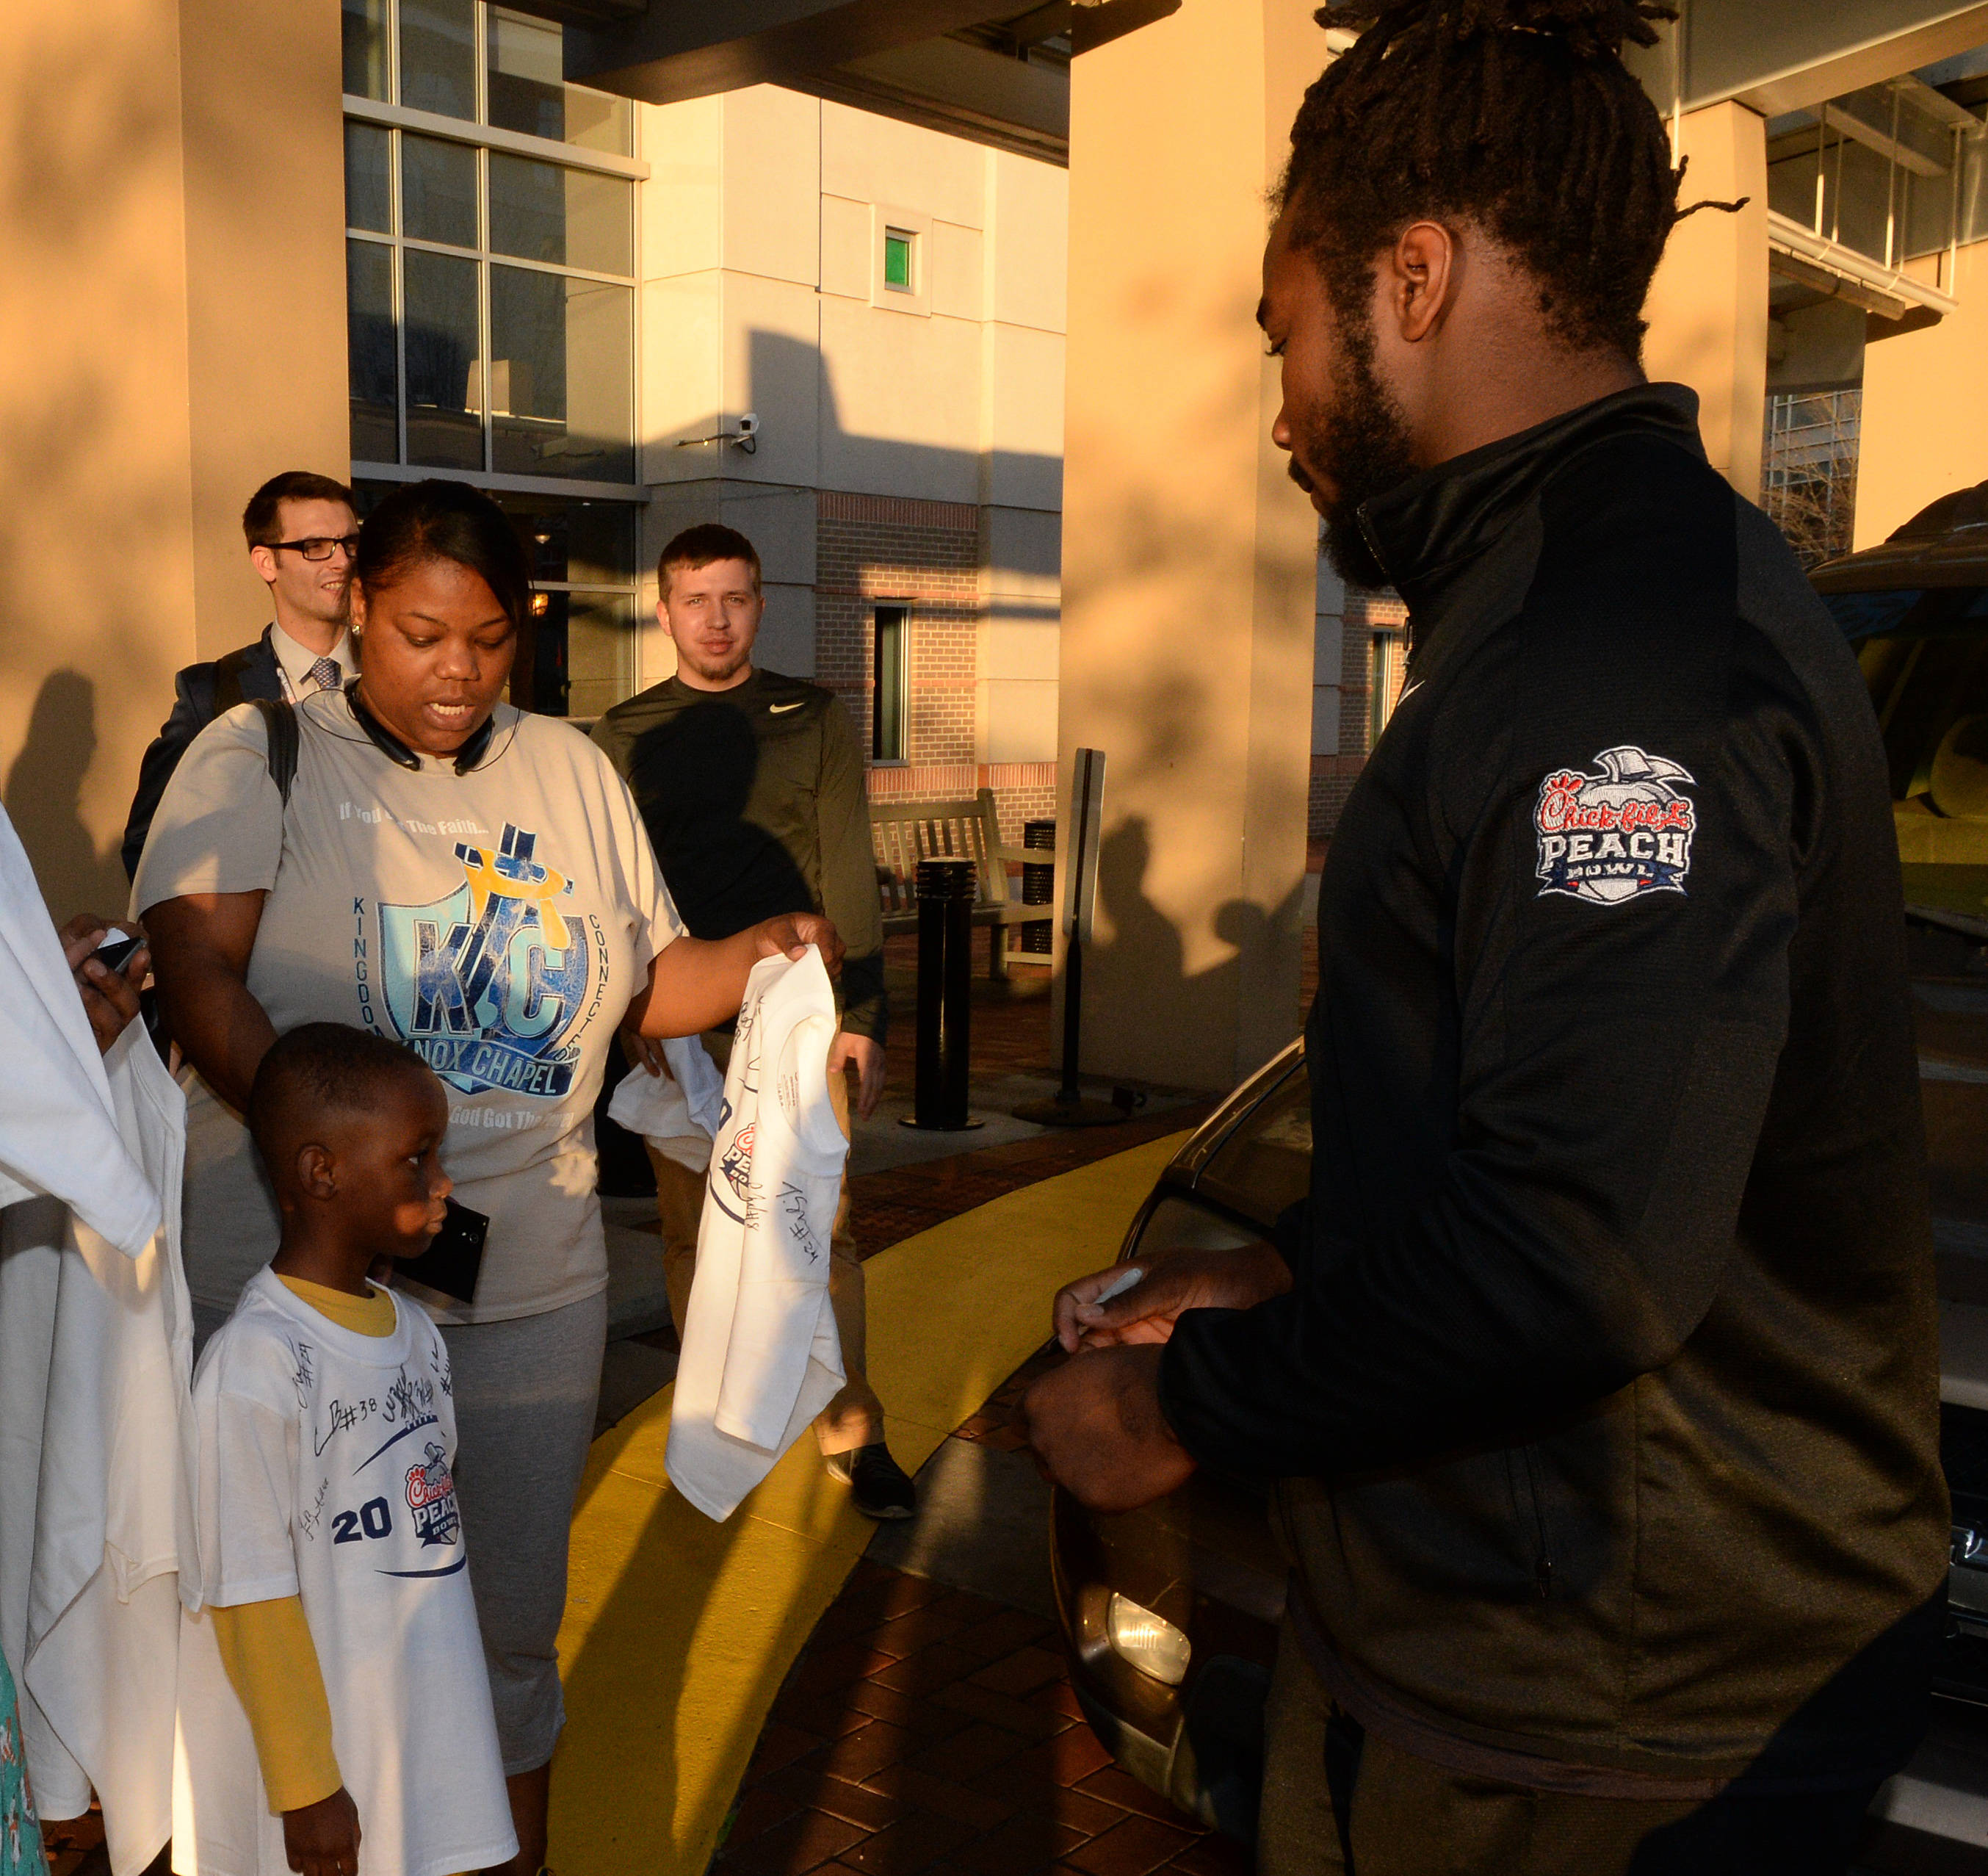 Chick-Fil-A Peach Bowl Hospital Visit